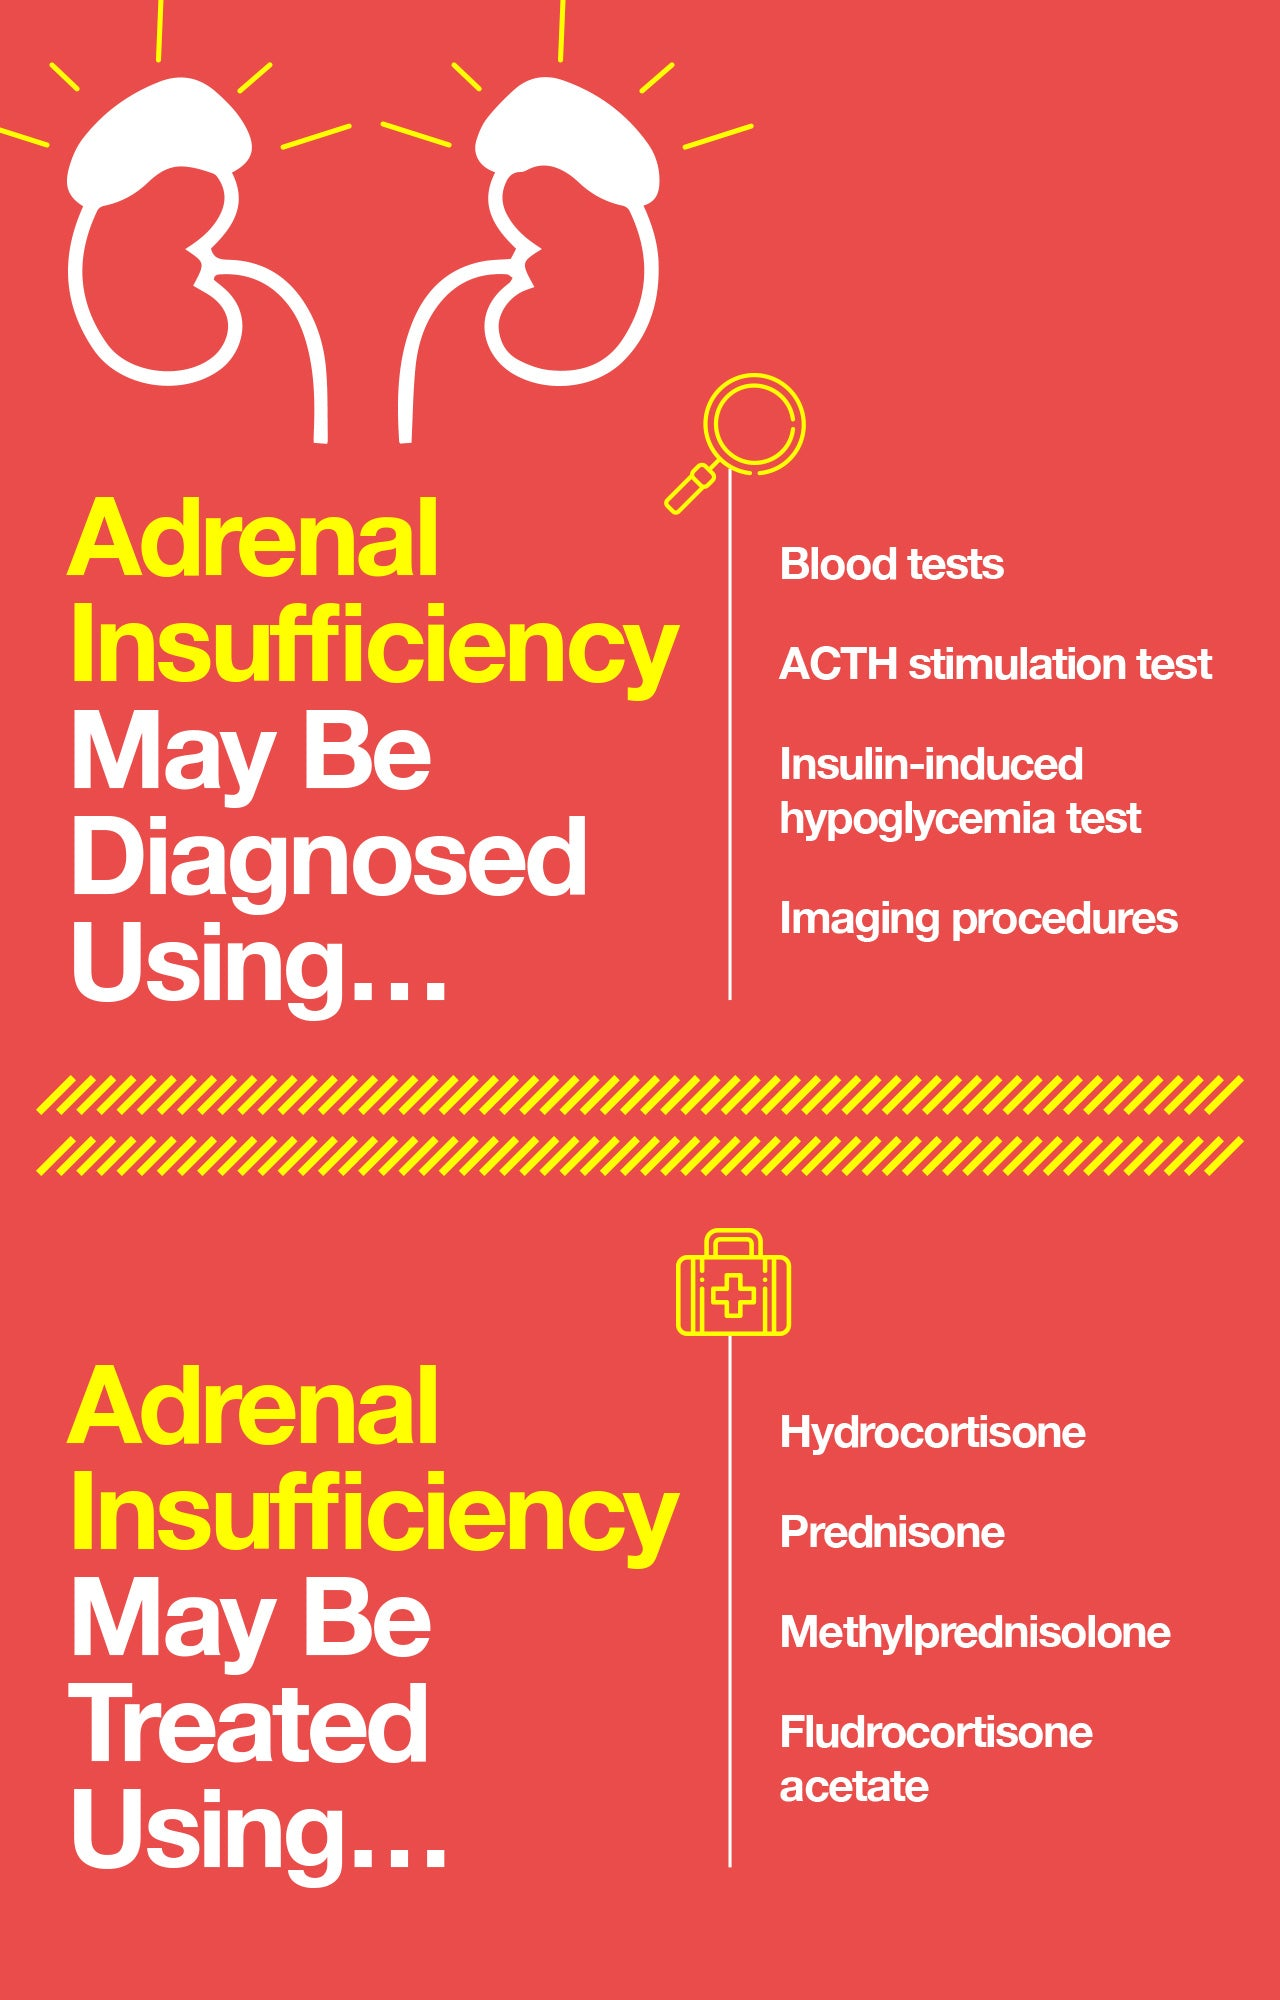 How to diagnose and treat adrenal insufficiency